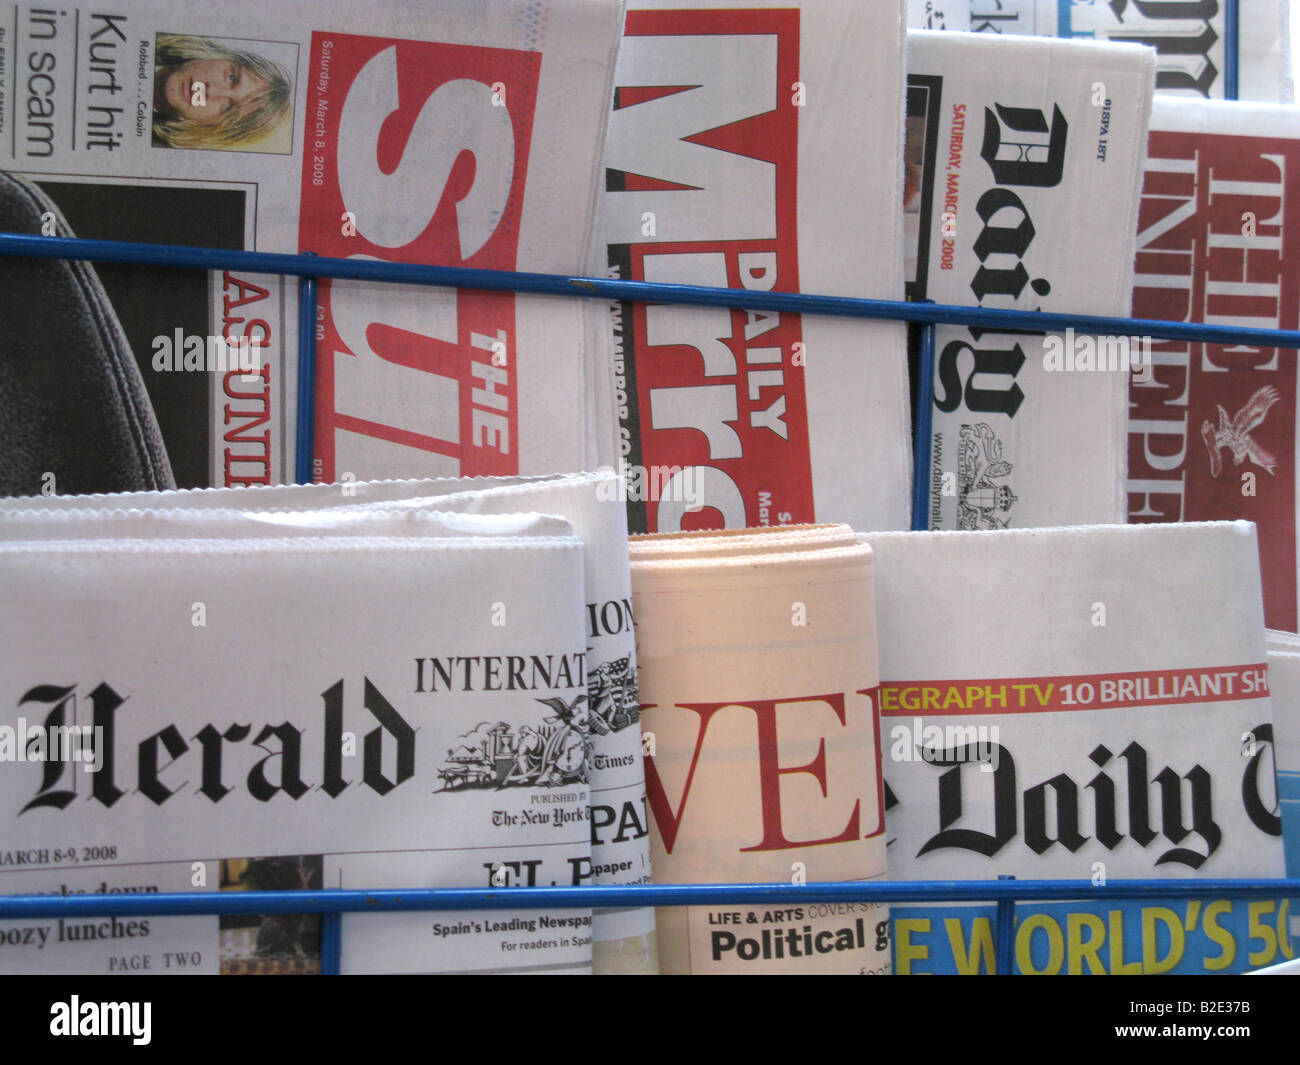 British Newspapers in a Shelve Stock Photo